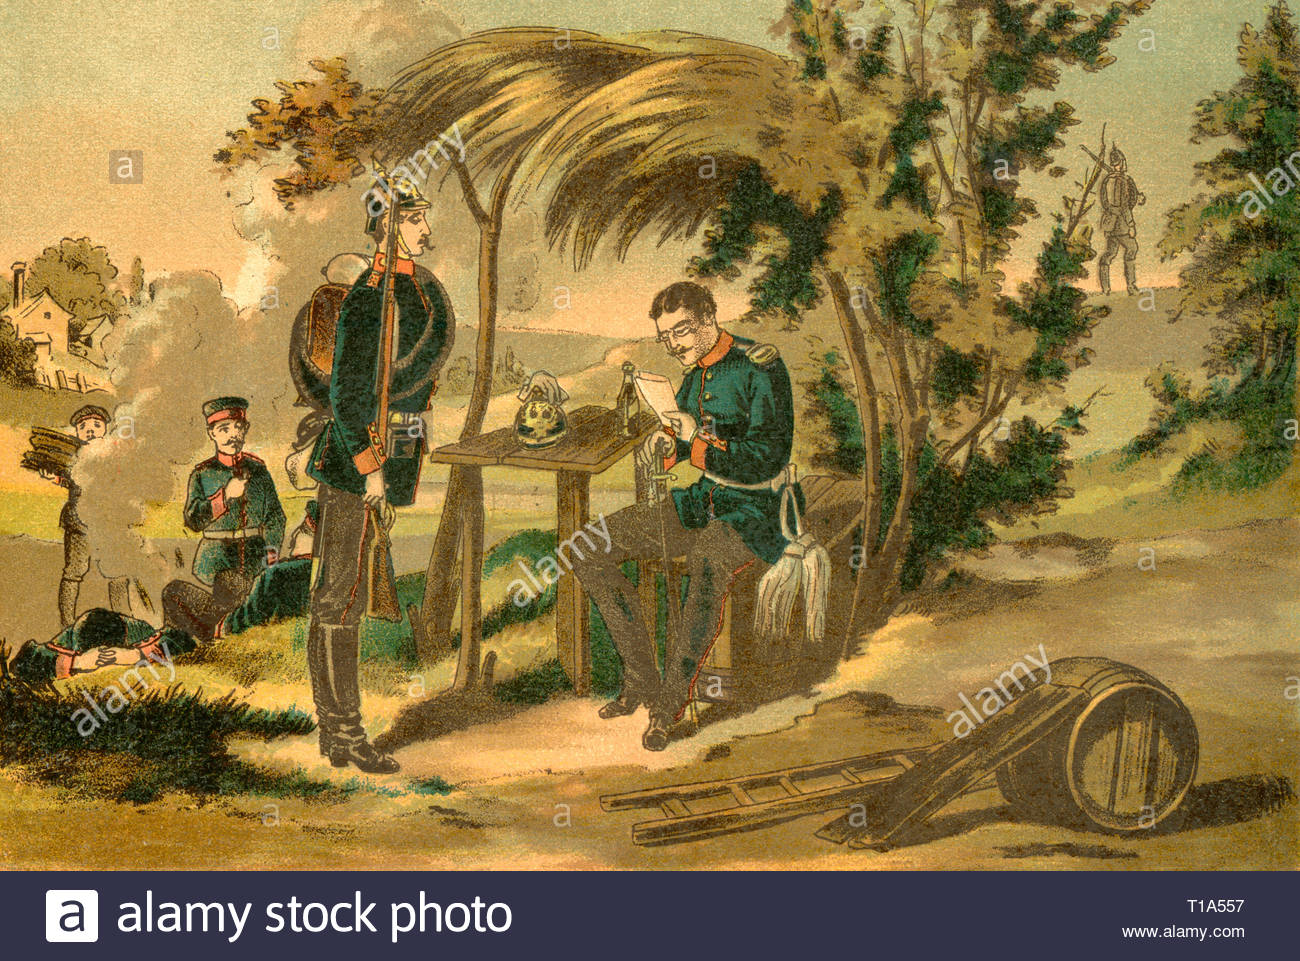 Germany, Thuringia, 2. Thuringian Infantry Regiment No. 32, coulered lithography from about 1890, Artist's Copyright must also be cleared - Stock Image